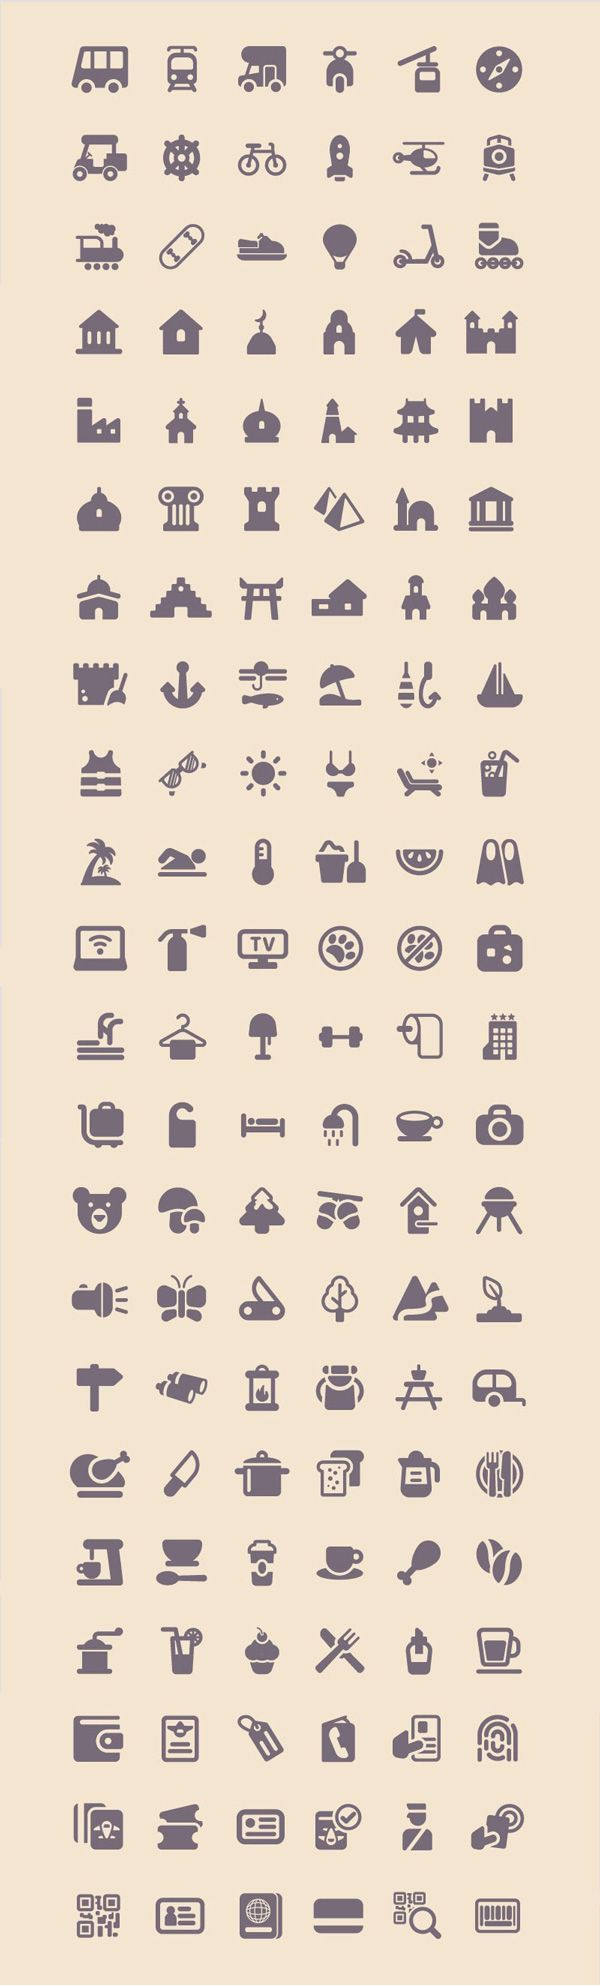 Free Download : Tourism & Travel Icon Set (100 Icons, PNG, SVG)